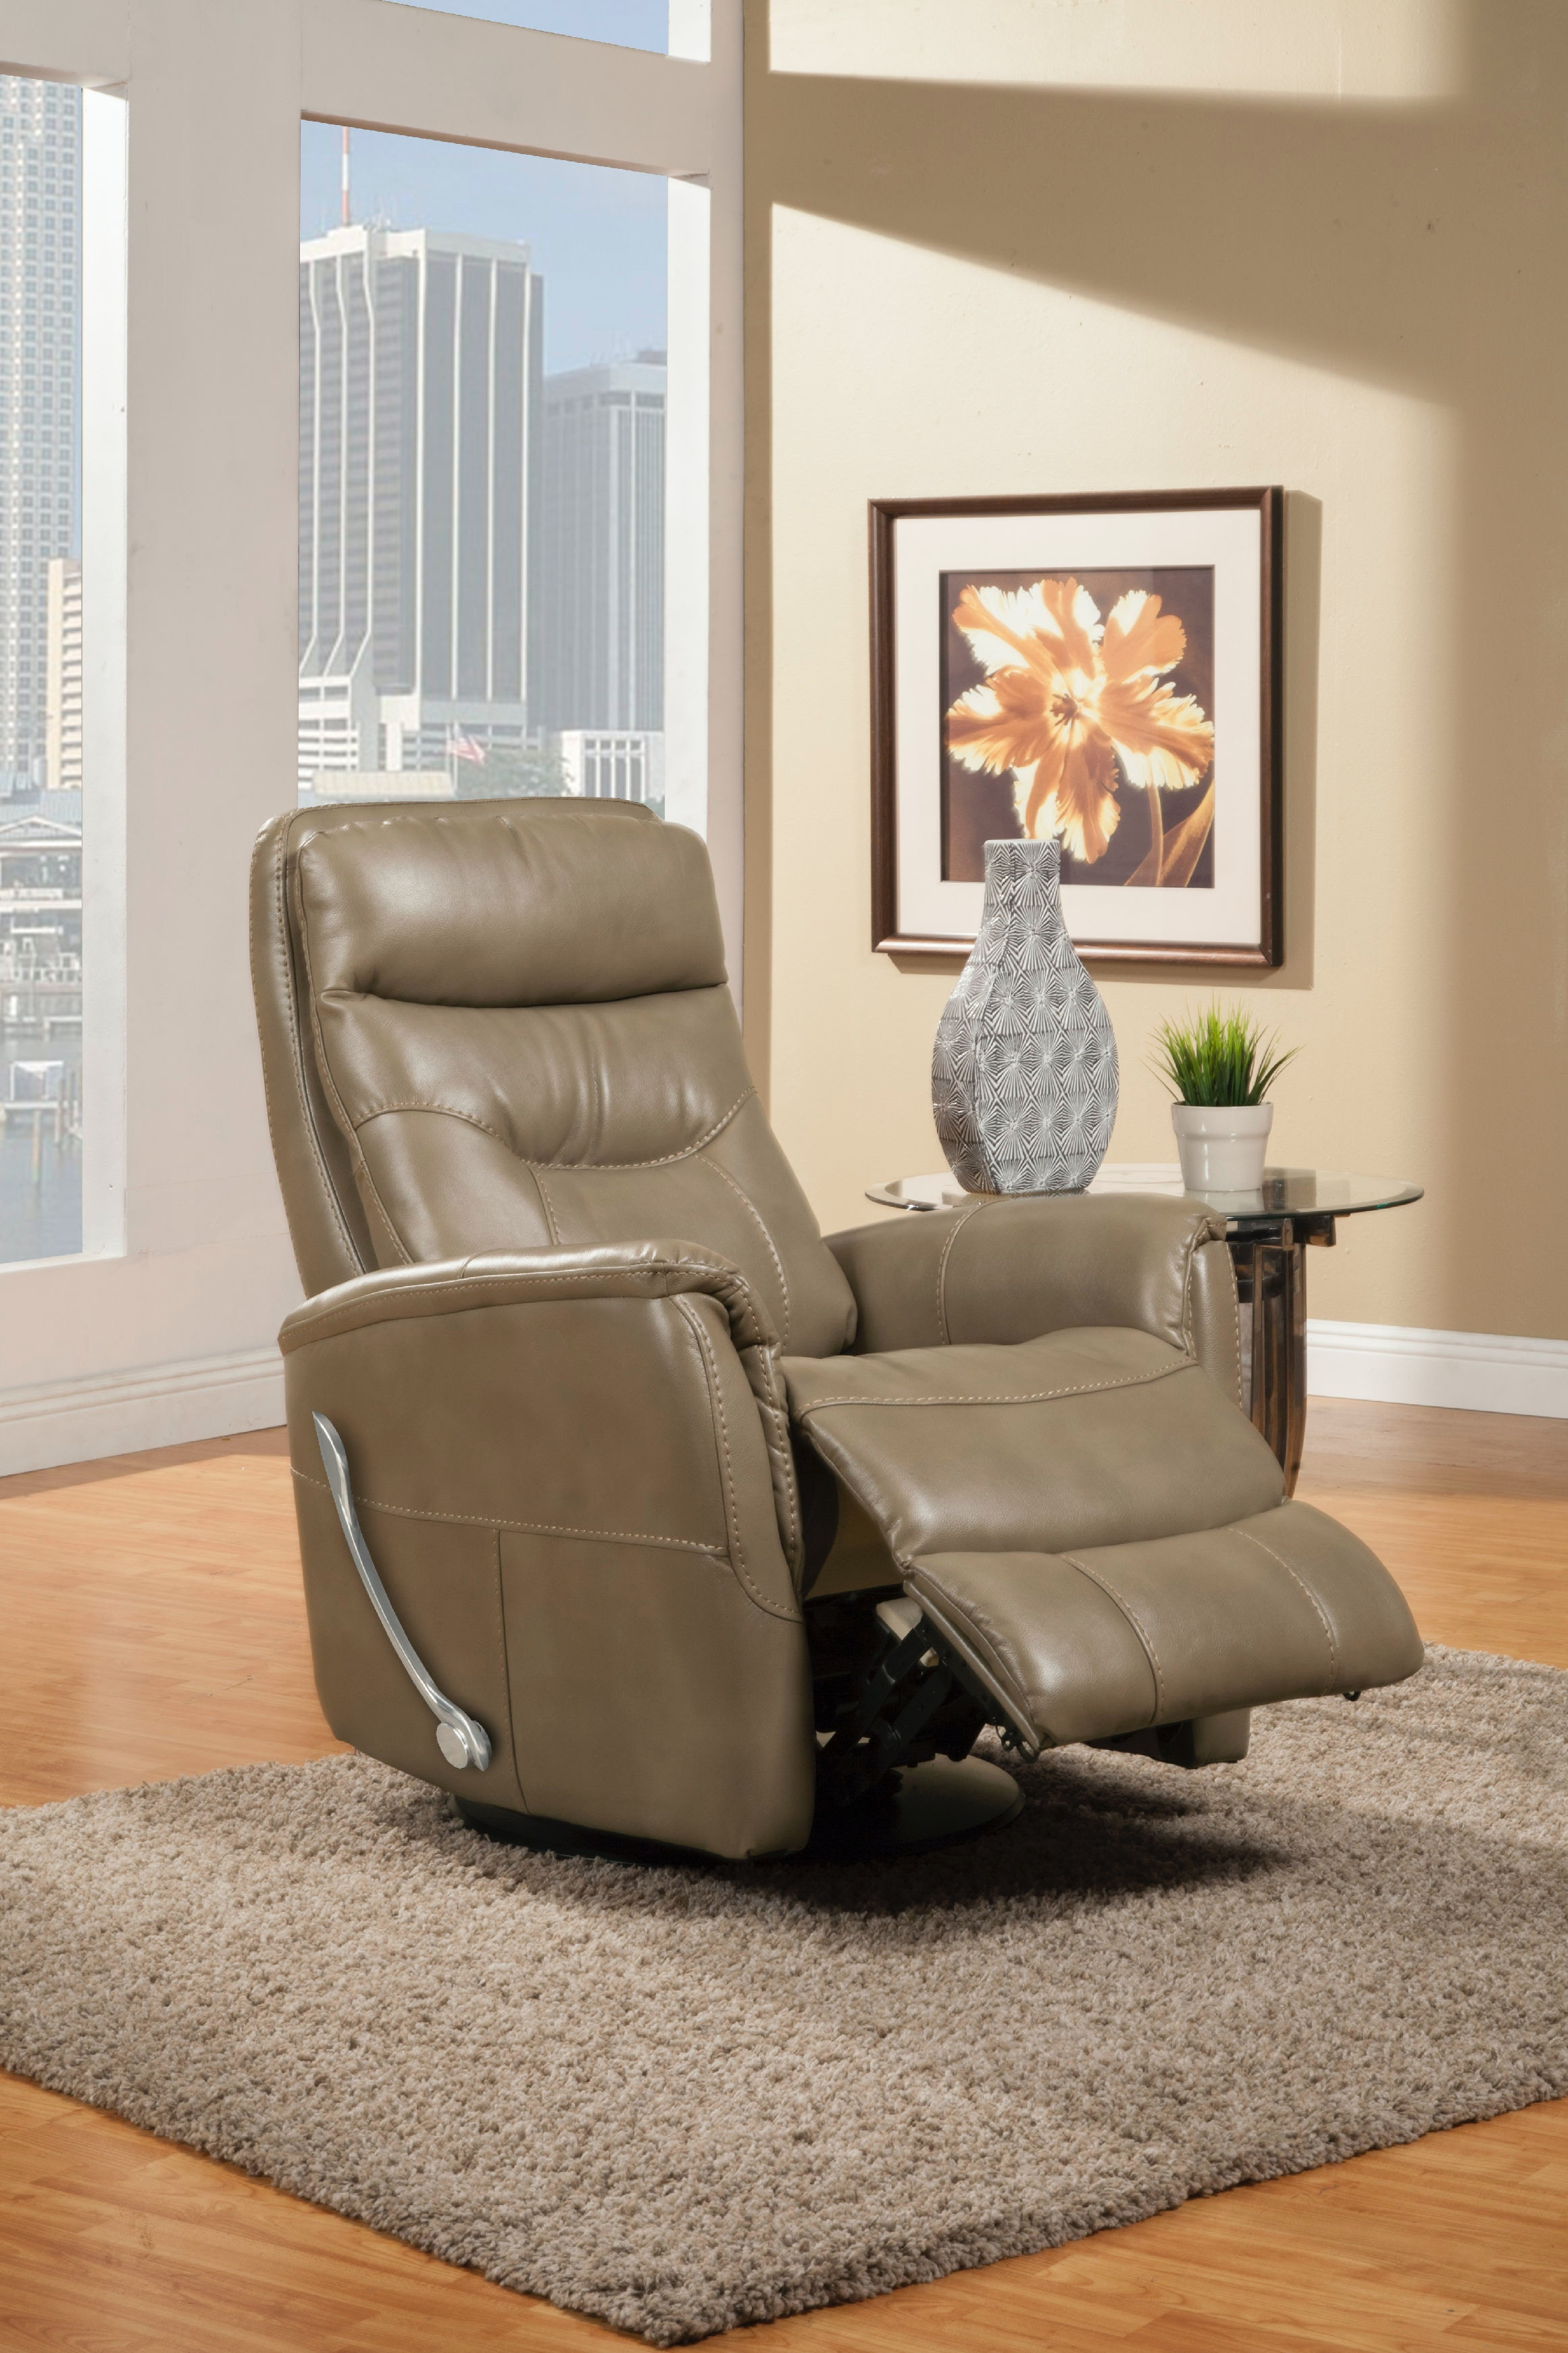 Parker Living Glider Swivel Recliner MGEM 812GS LIN